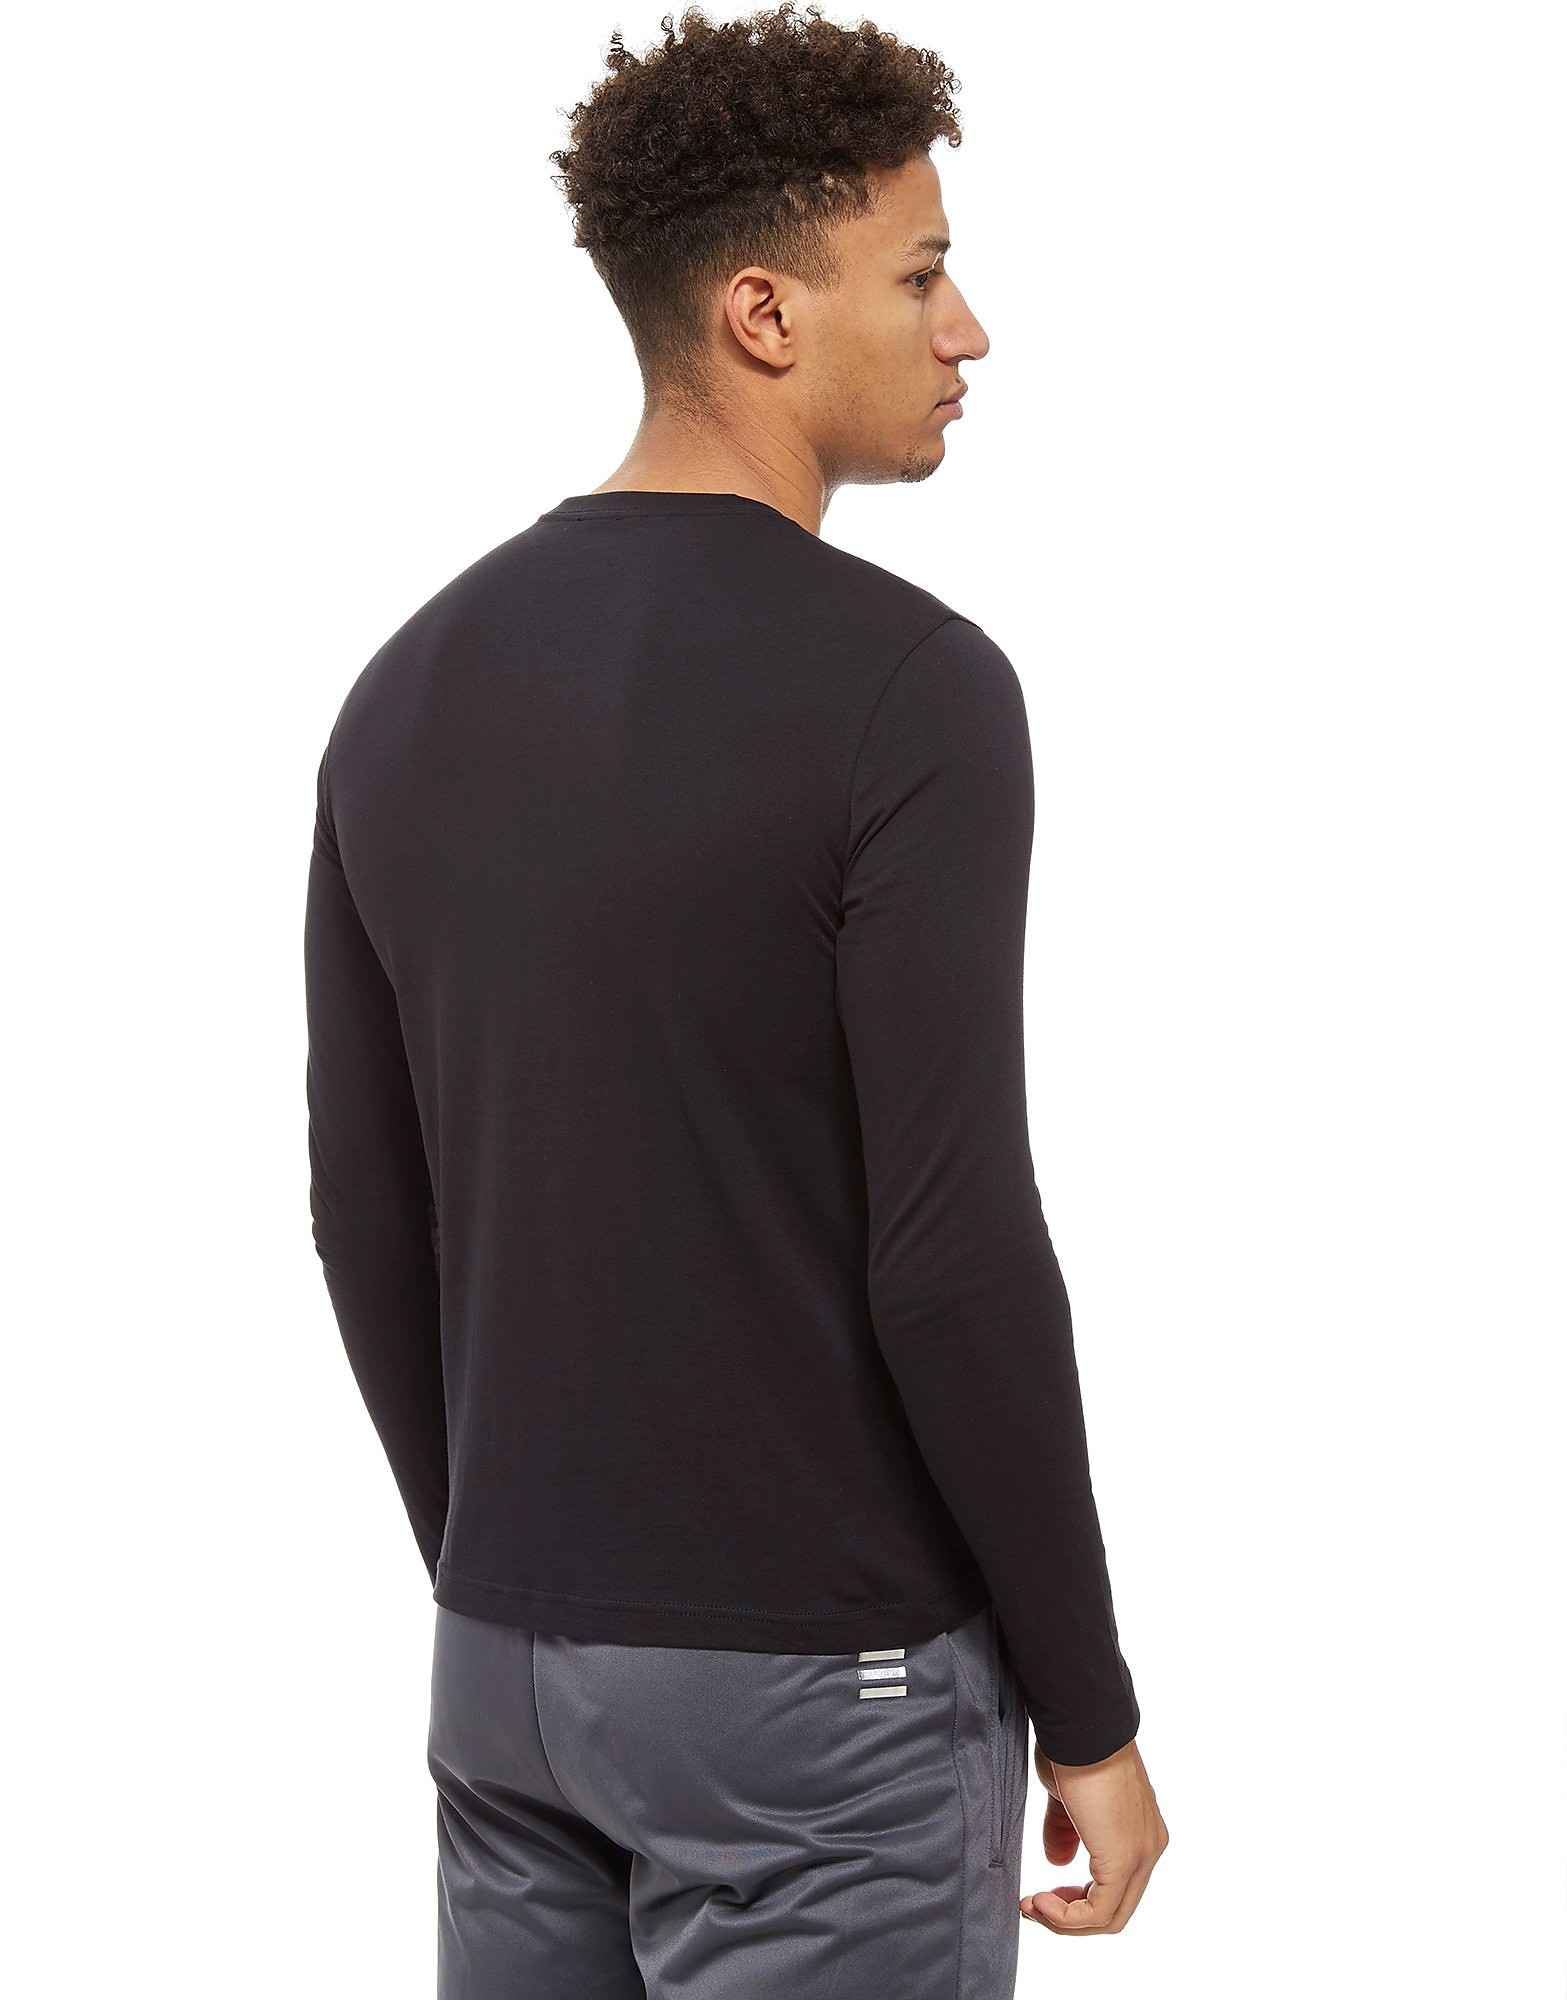 Emporio Armani EA7 Long Sleeve Eagle T-Shirt